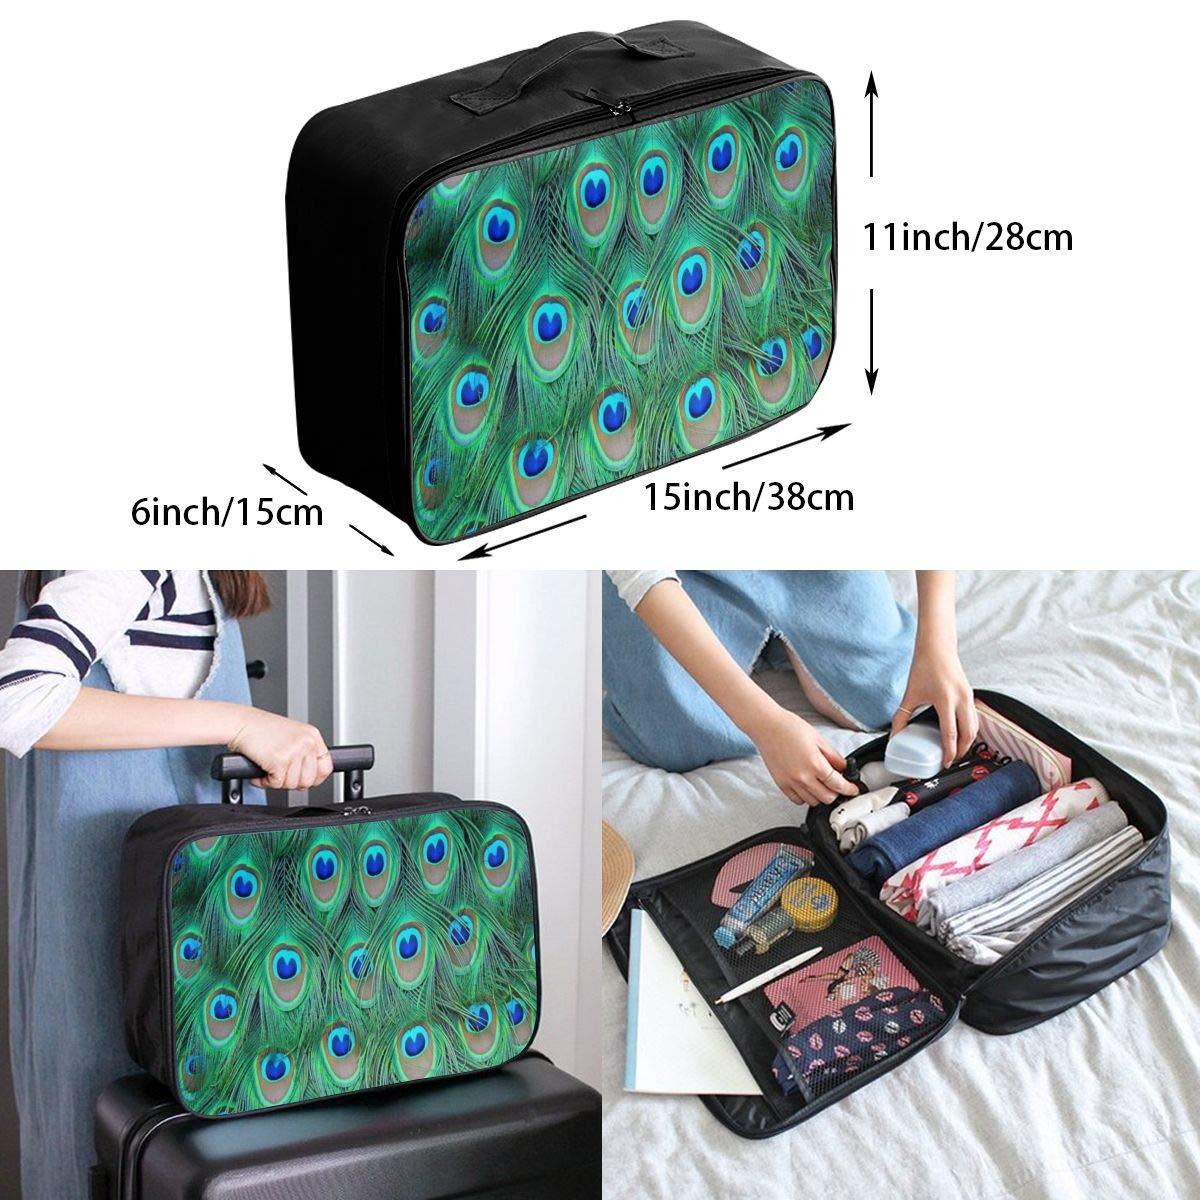 Luggage Bag Travel Duffel Bag Waterproof Seamless Sailing Ships And Whales Lightweight Large Capacity Portable Storage Bag